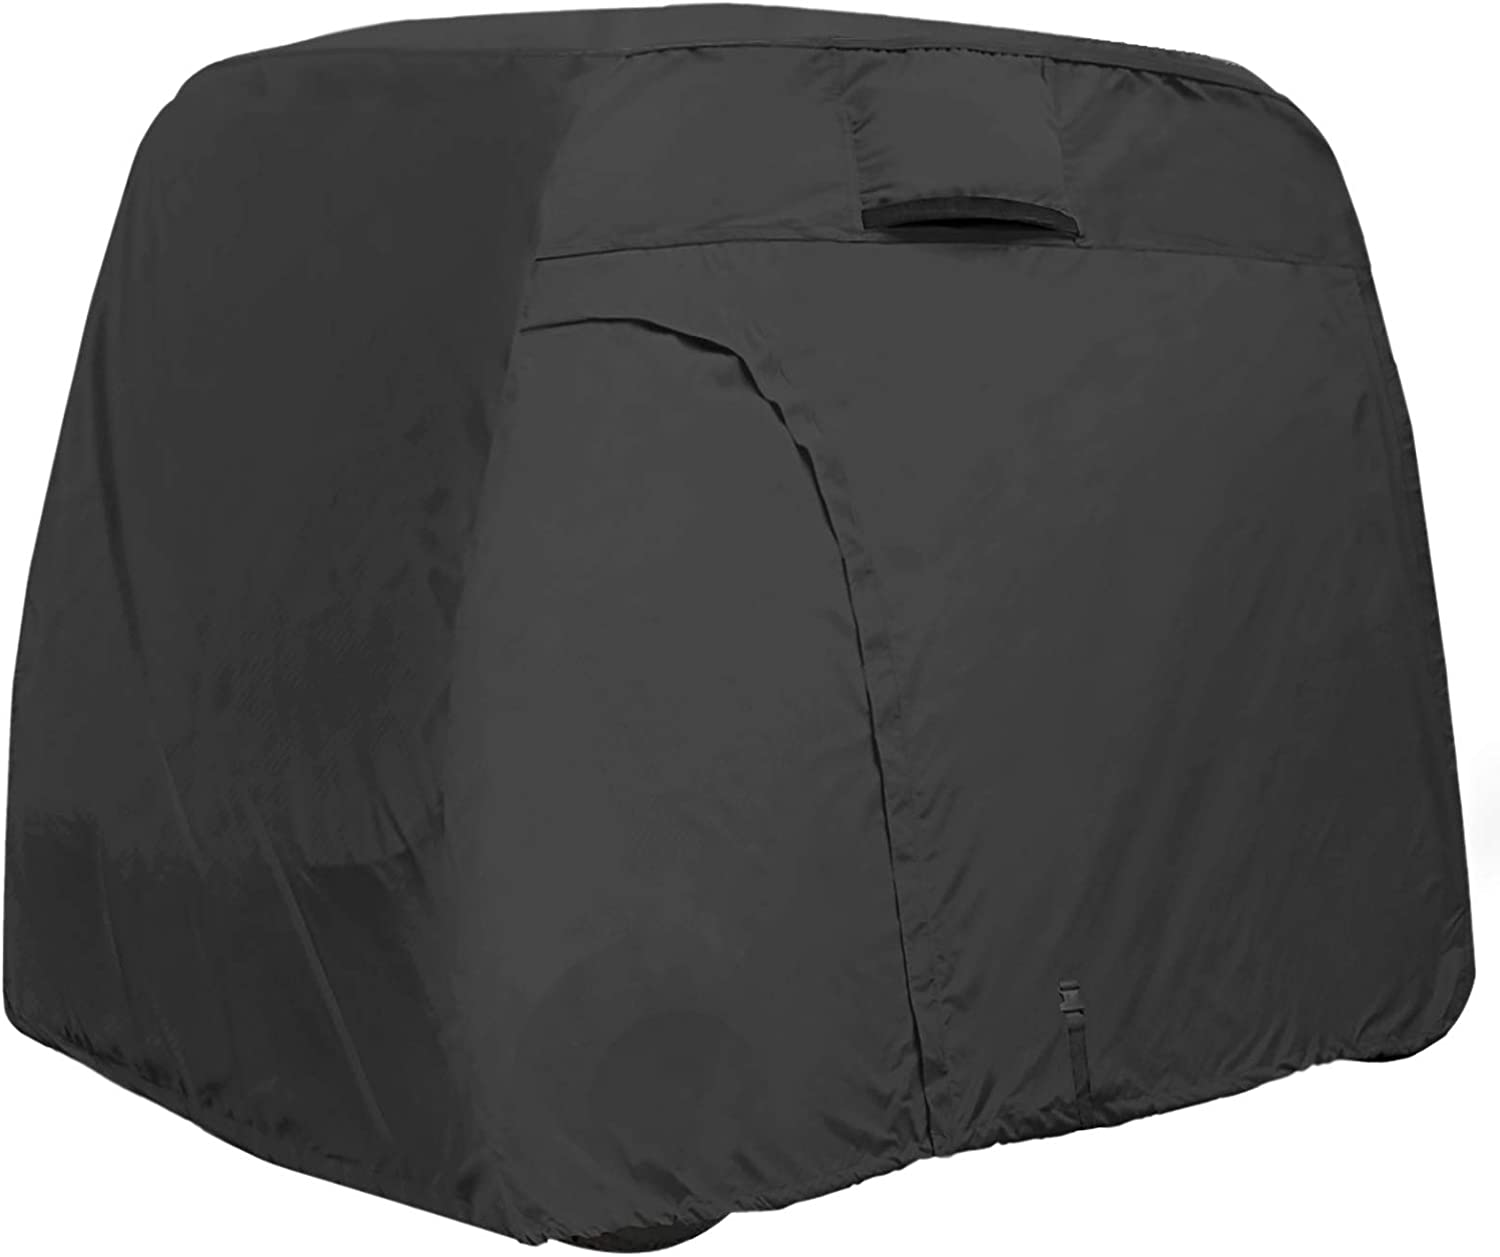 Explore Land 600D Waterproof セール特価 Golf for ラッピング無料 Cart Cover Fits Universal